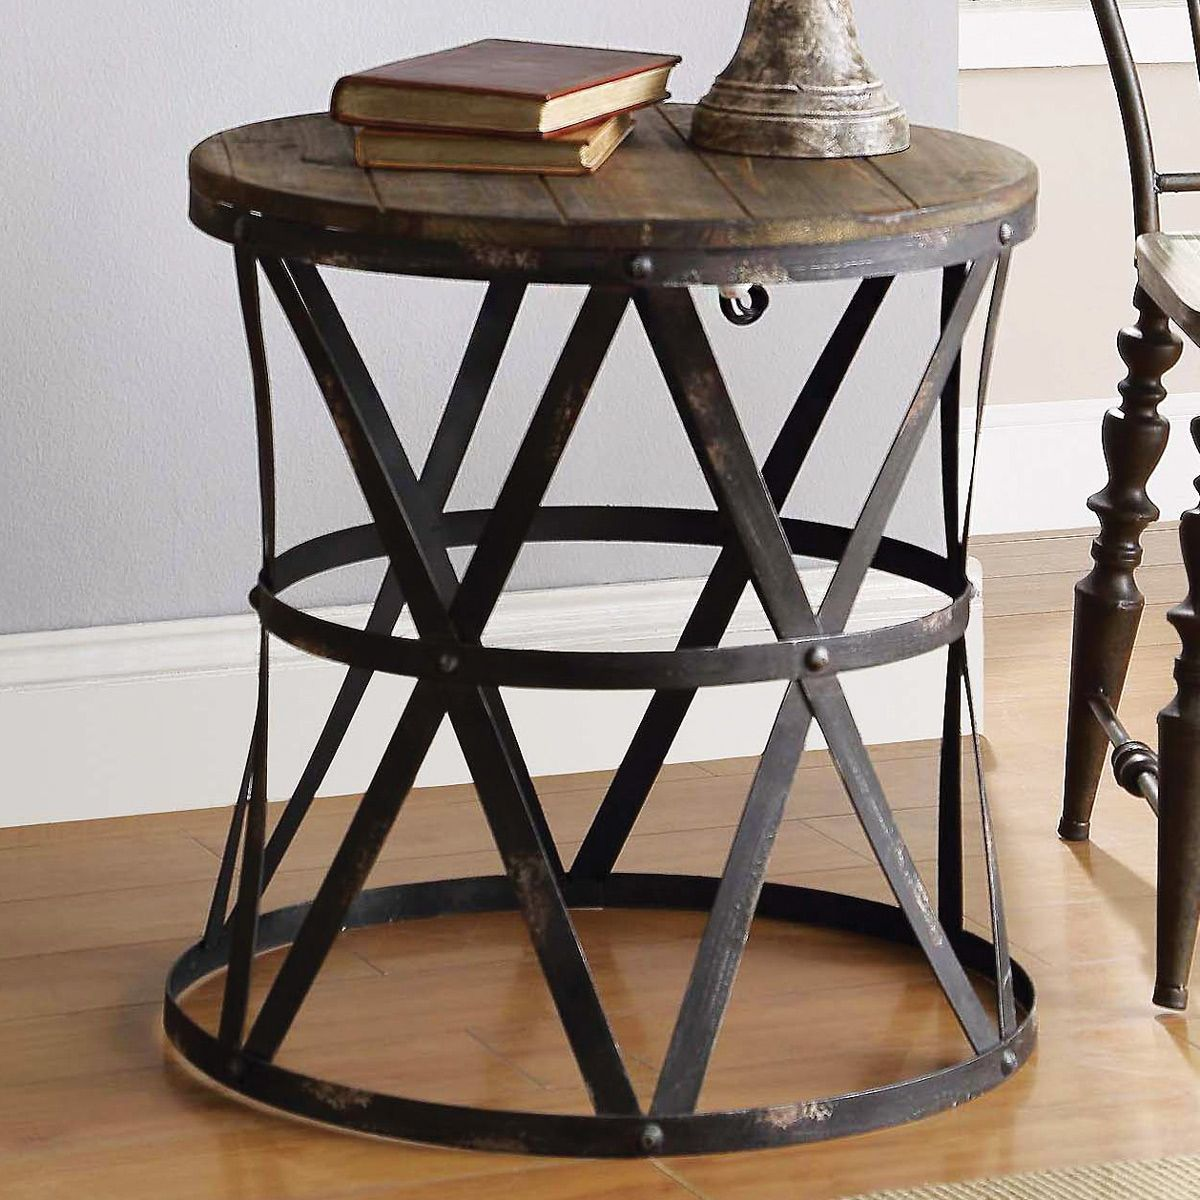 rustic modern side table dream home whatnots industrial black round end coffee tables and forest decor white bedside with one drawer pallet patio furniture instructions pair lamp